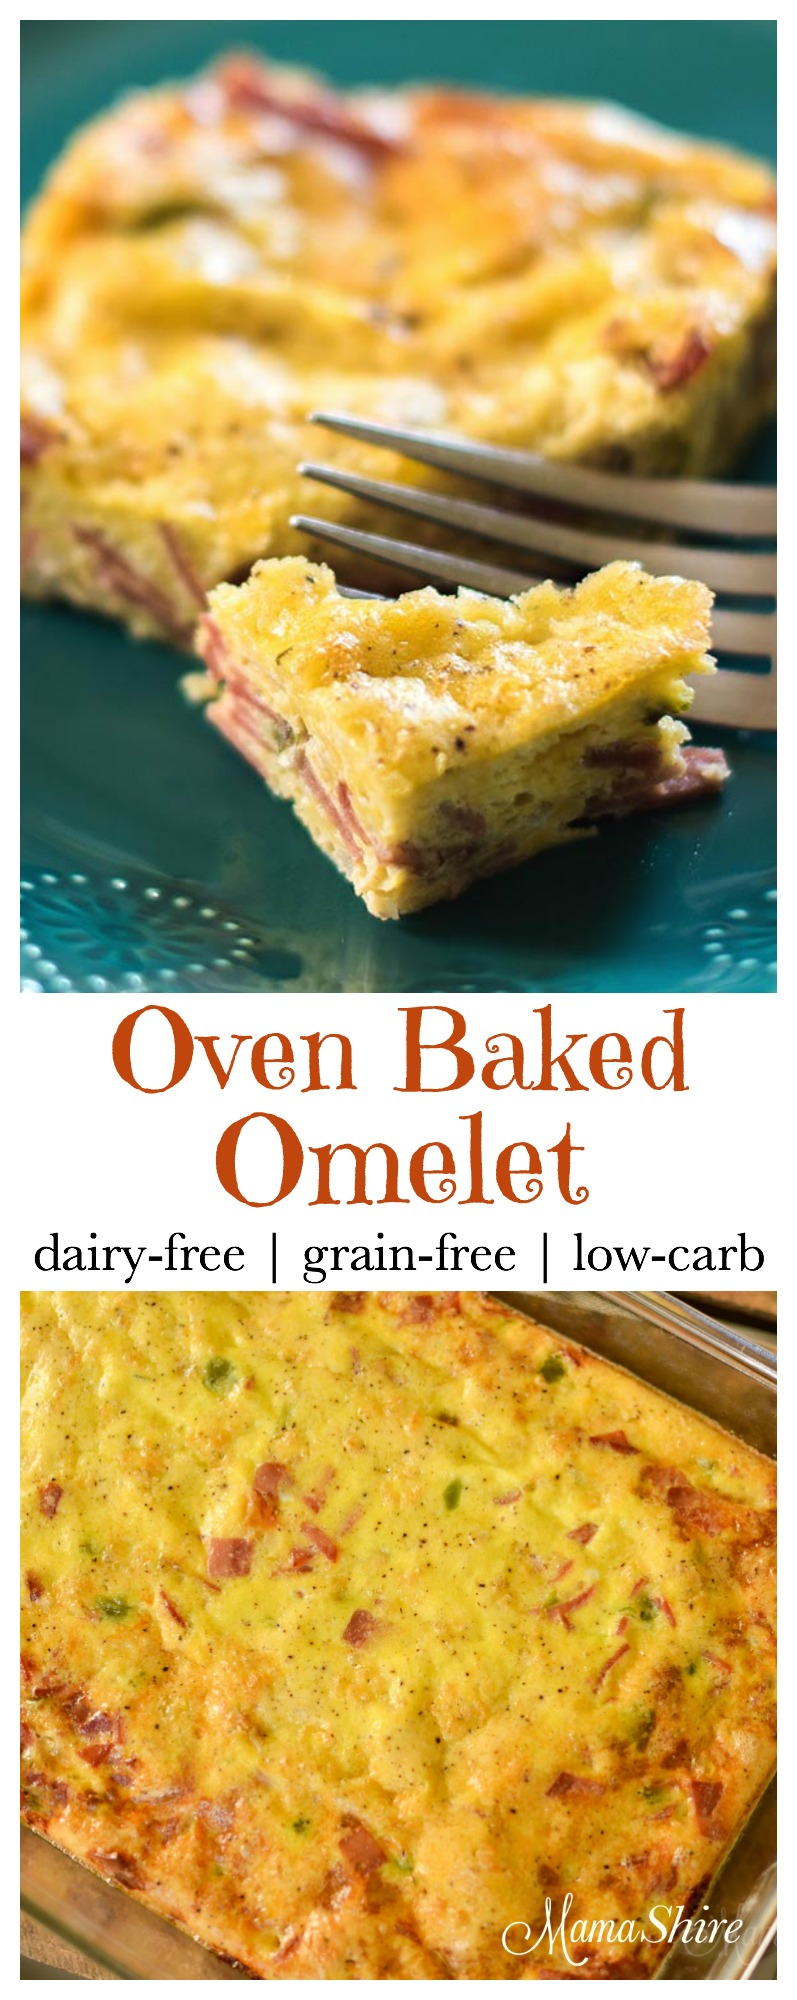 Oven Baked Omelet - Dairy-Free, Grain-Free, Low-Carb, THM